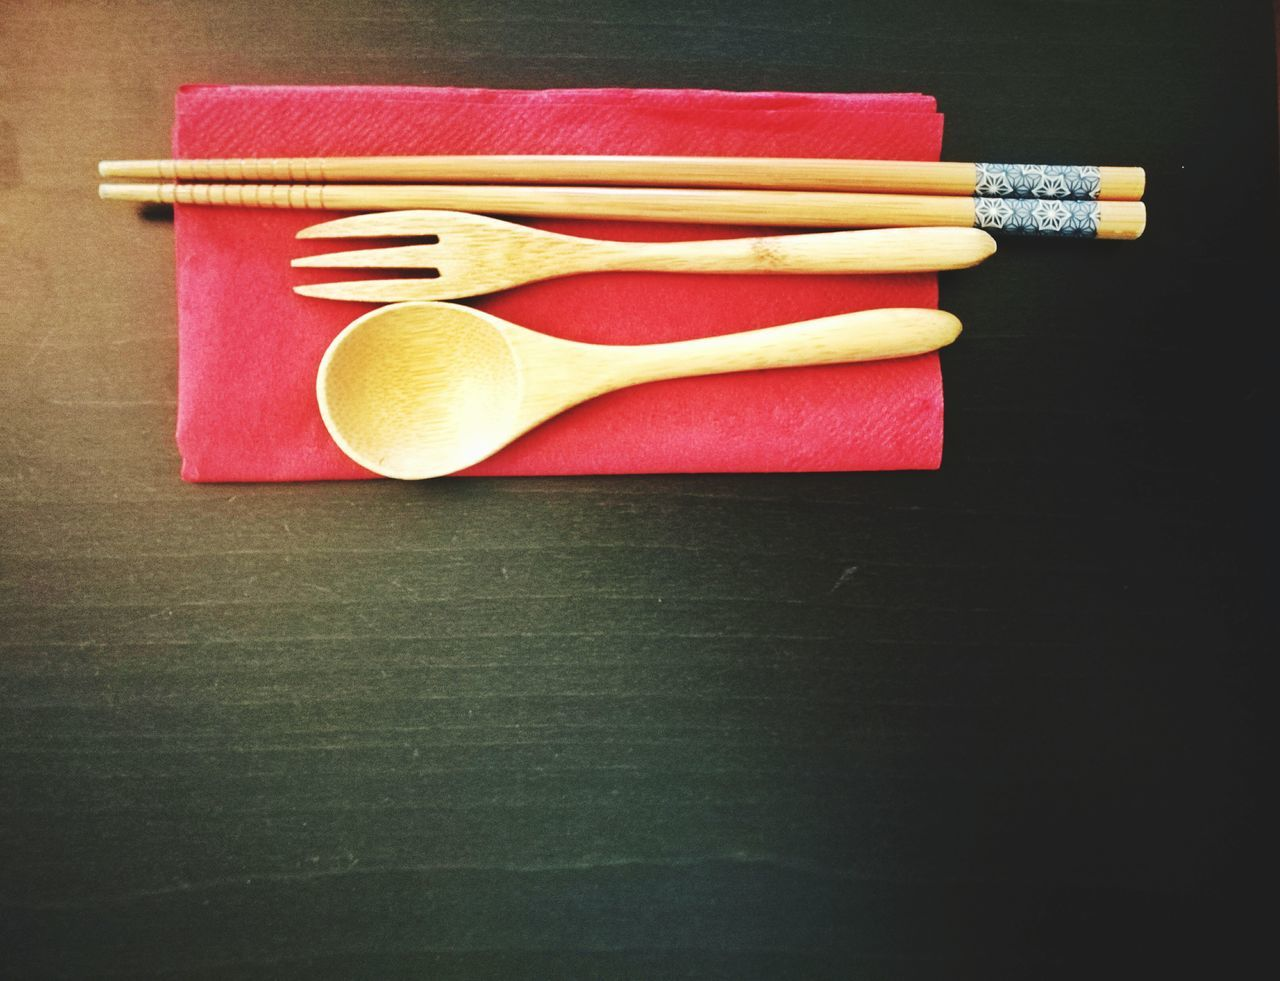 Directly Above Shot Of Chopsticks By Fork And Spoon On Place Mat